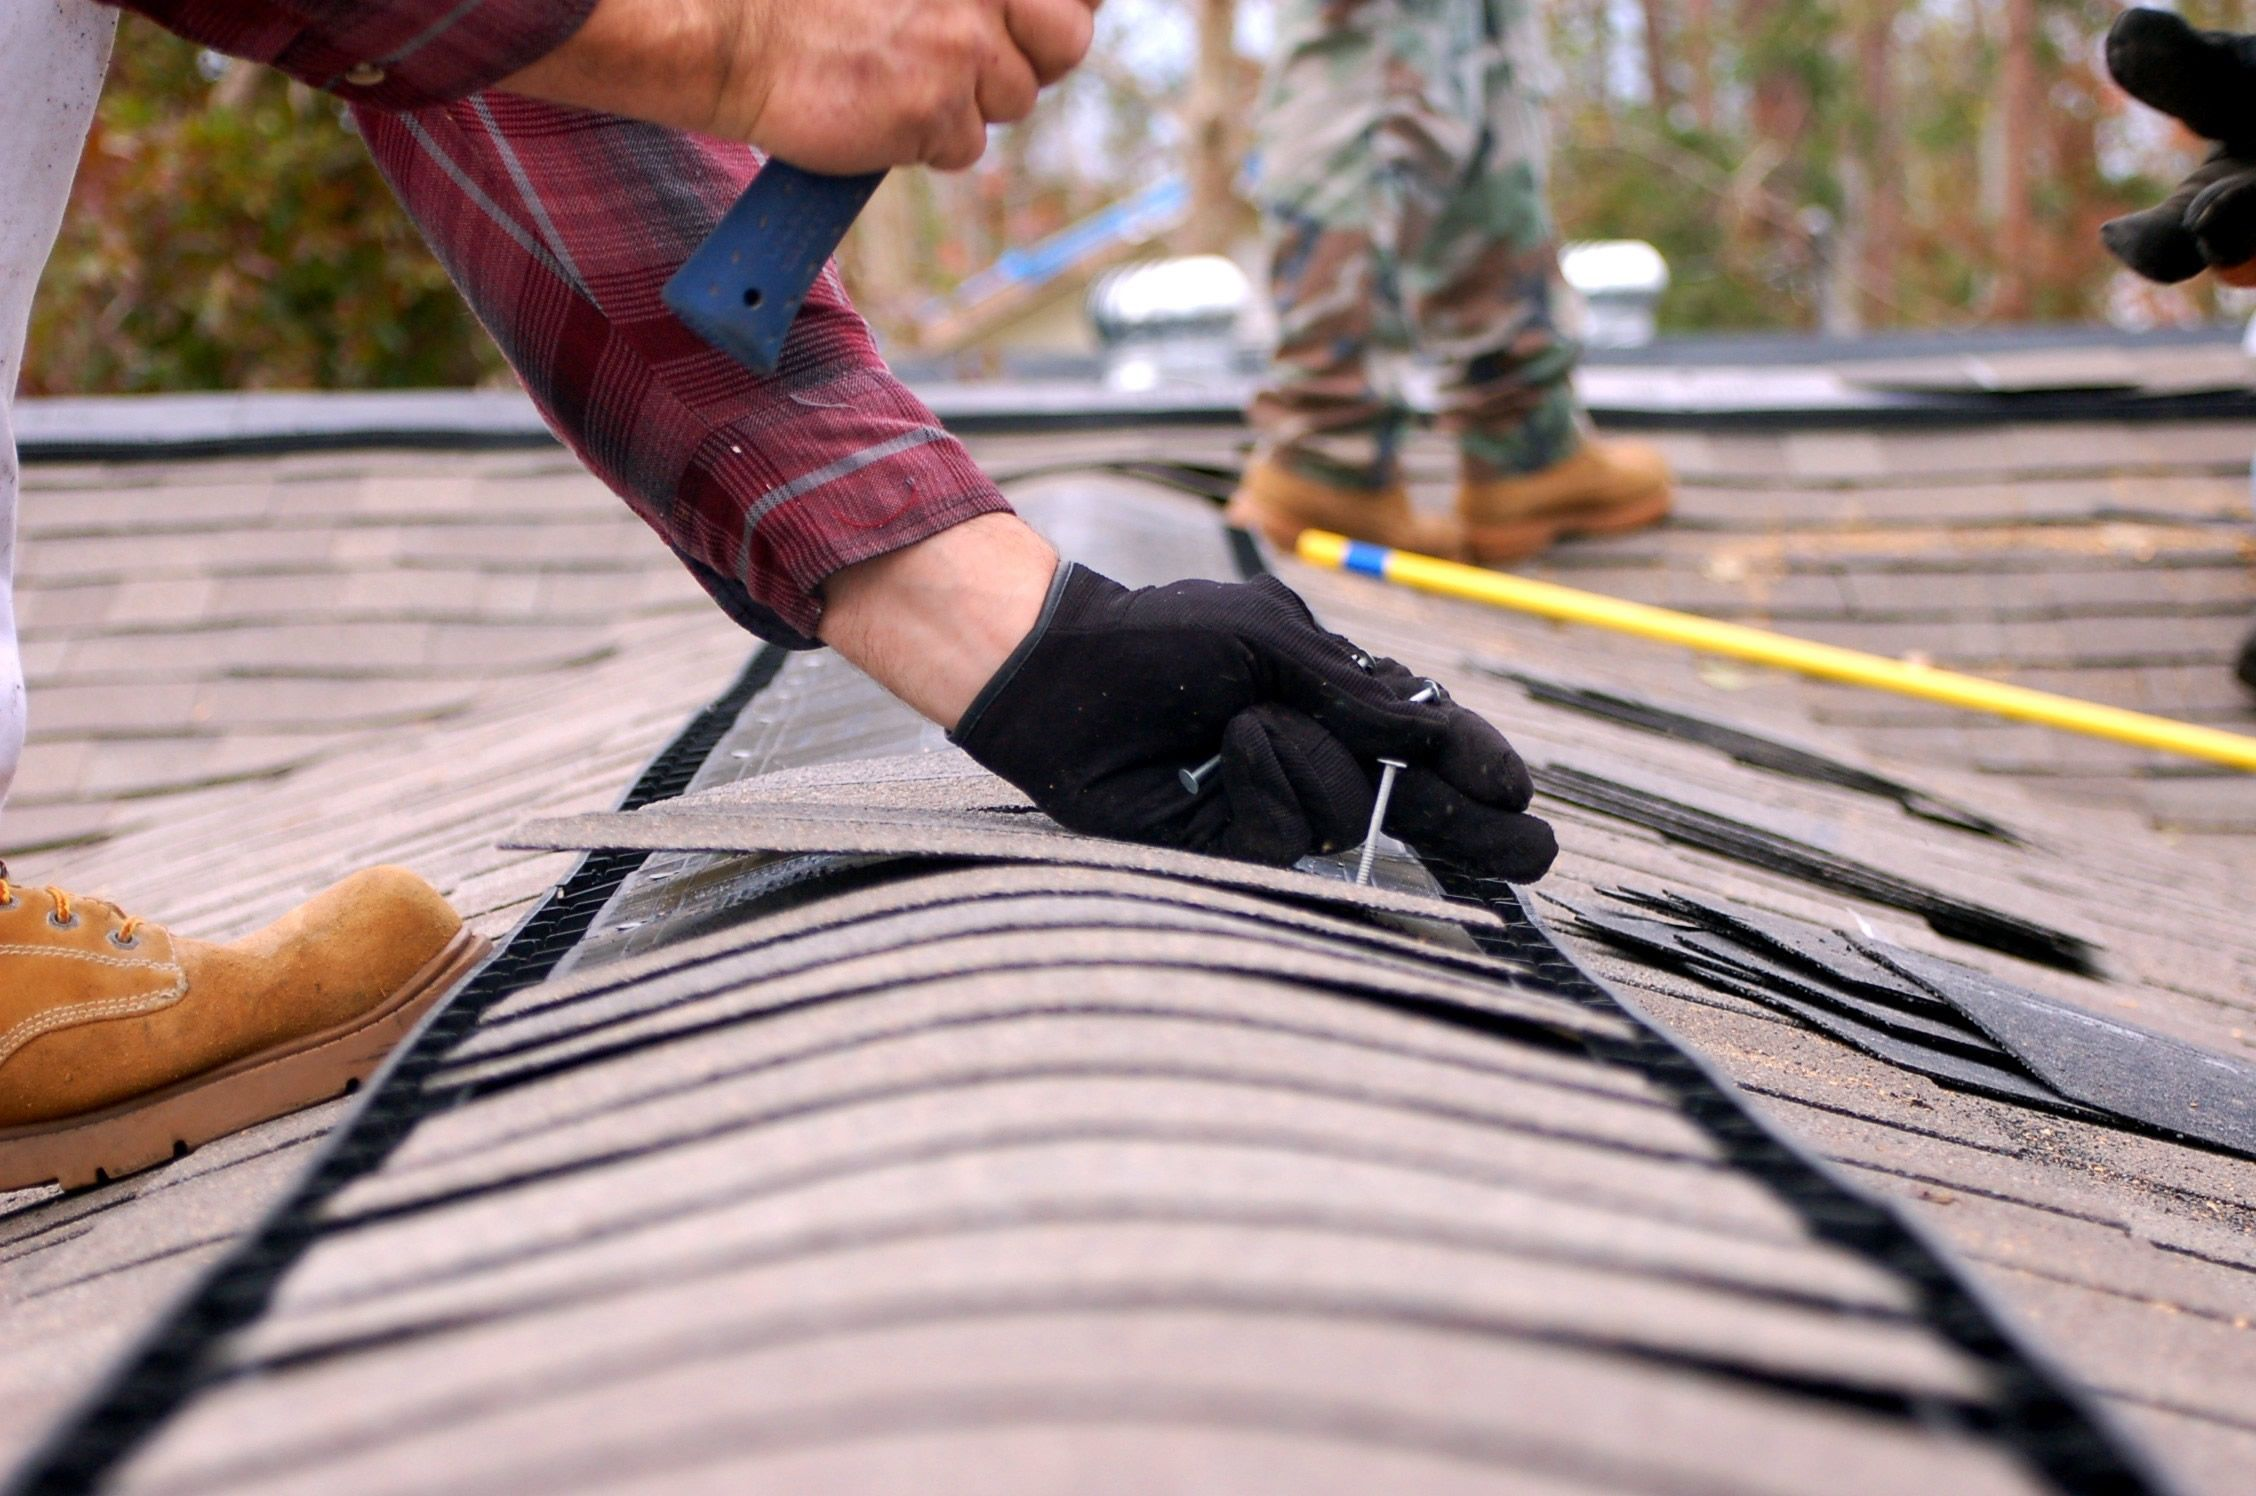 Ferris Roofing Contractors Serves Residential Roofing Customers In The Entire Dallas Fort Worth Metroplex O Emergency Roof Repair Roof Repair Roof Maintenance